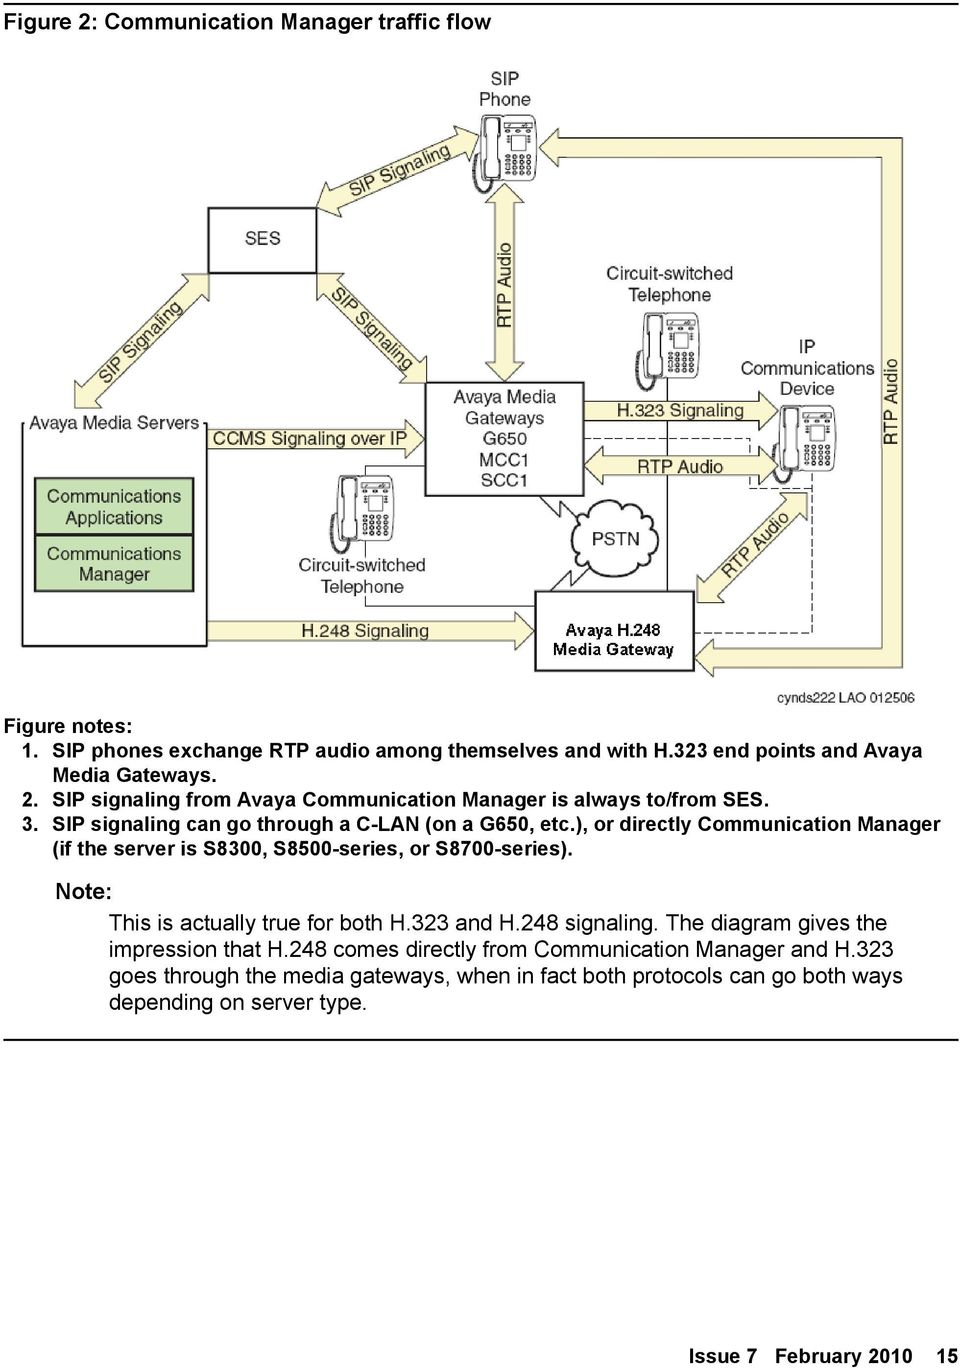 Note: Note: This is actually true for both H.323 and H.248 signaling. The diagram gives the impression that H.248 comes directly from Communication Manager and H.